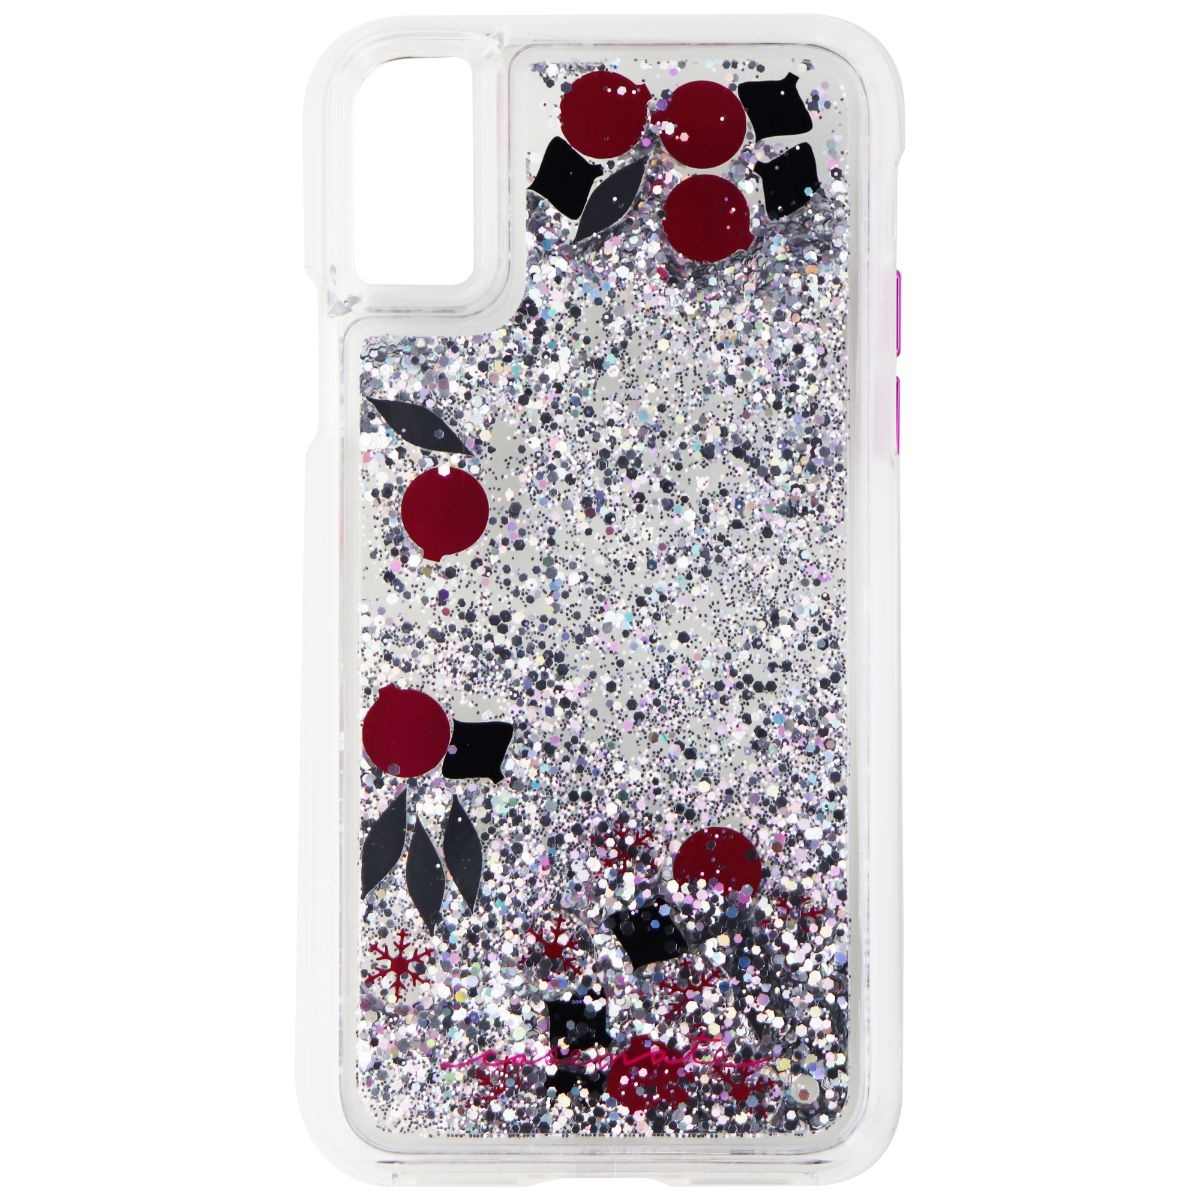 Case-Mate Waterfall Glitter Case for iPhone X 10 - Pink / Black / Silver Glitter